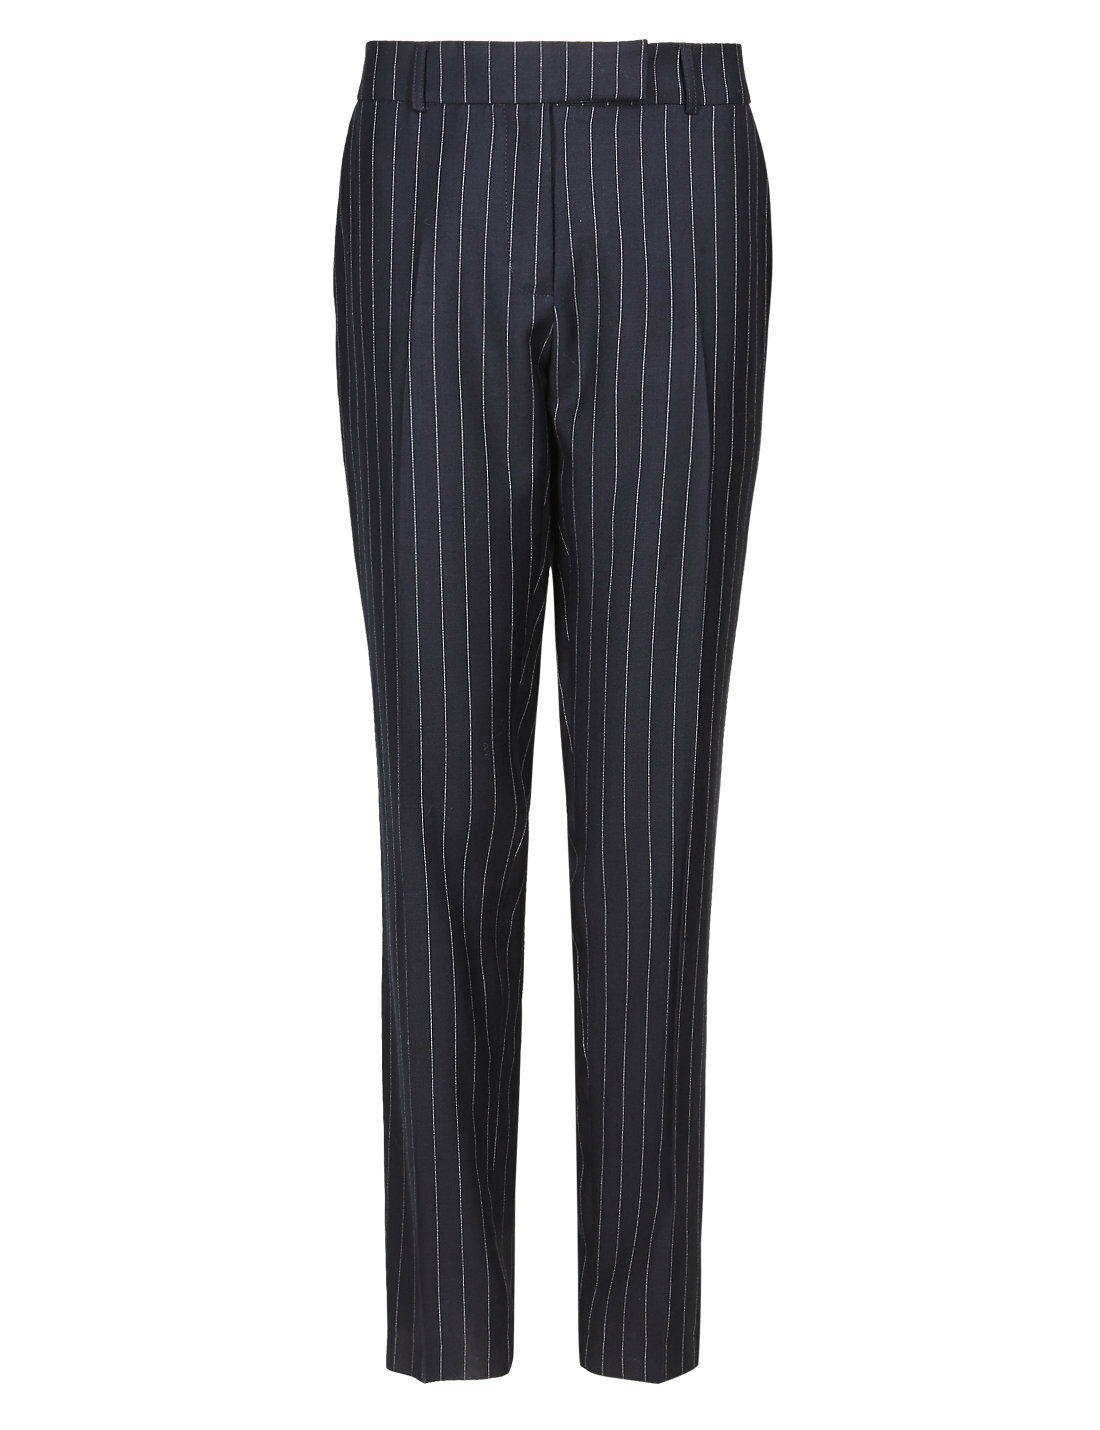 New M&S Best Of British Navy Pure Pure Pure New Wool Pinstripe Trousers Sz UK 10 | Mama kaufte ein bequemes, Baby ist glücklich